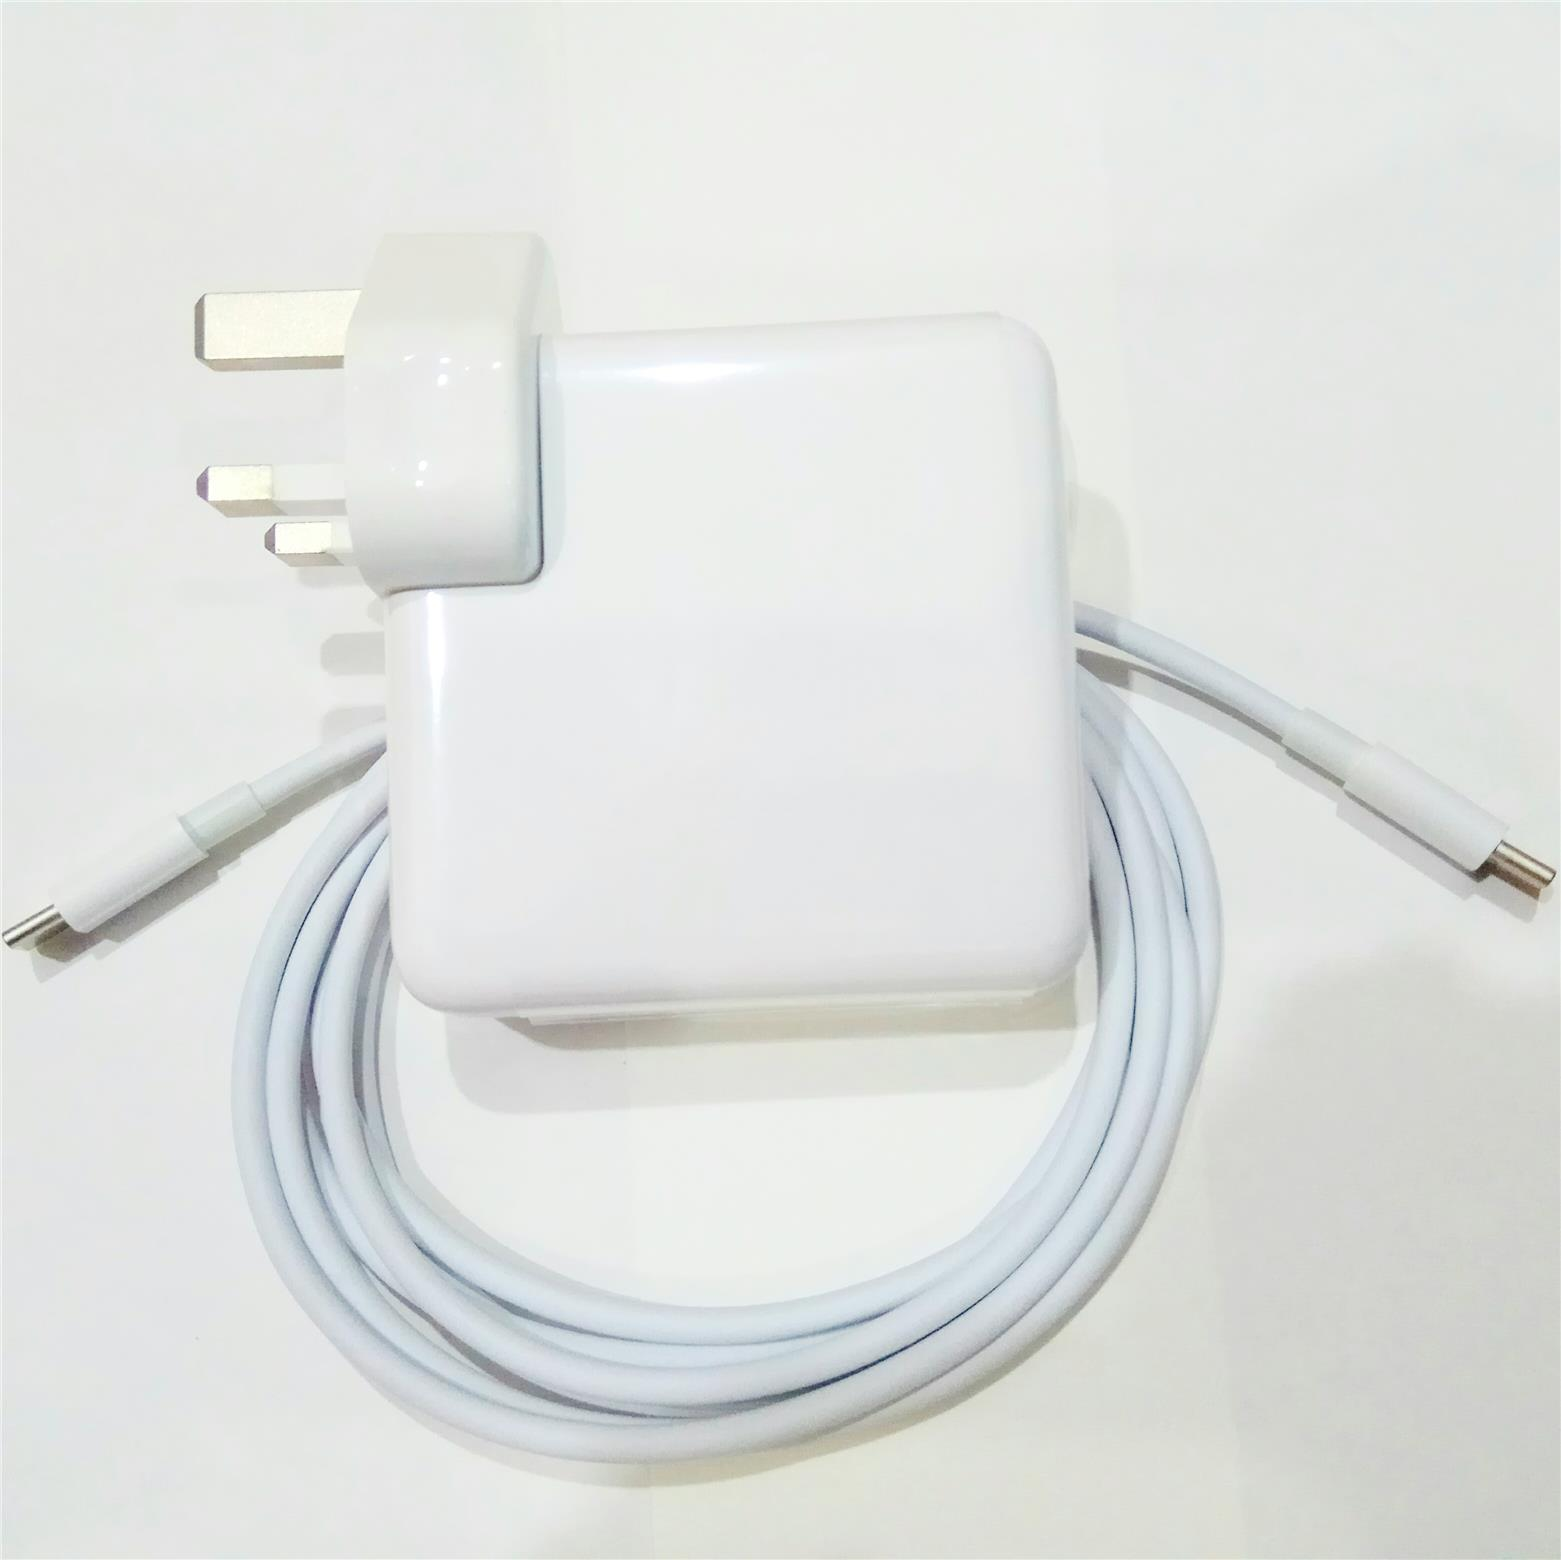 Apple Macbook 12 Usb C Type C 29w End 11 27 2018 4 14 Am